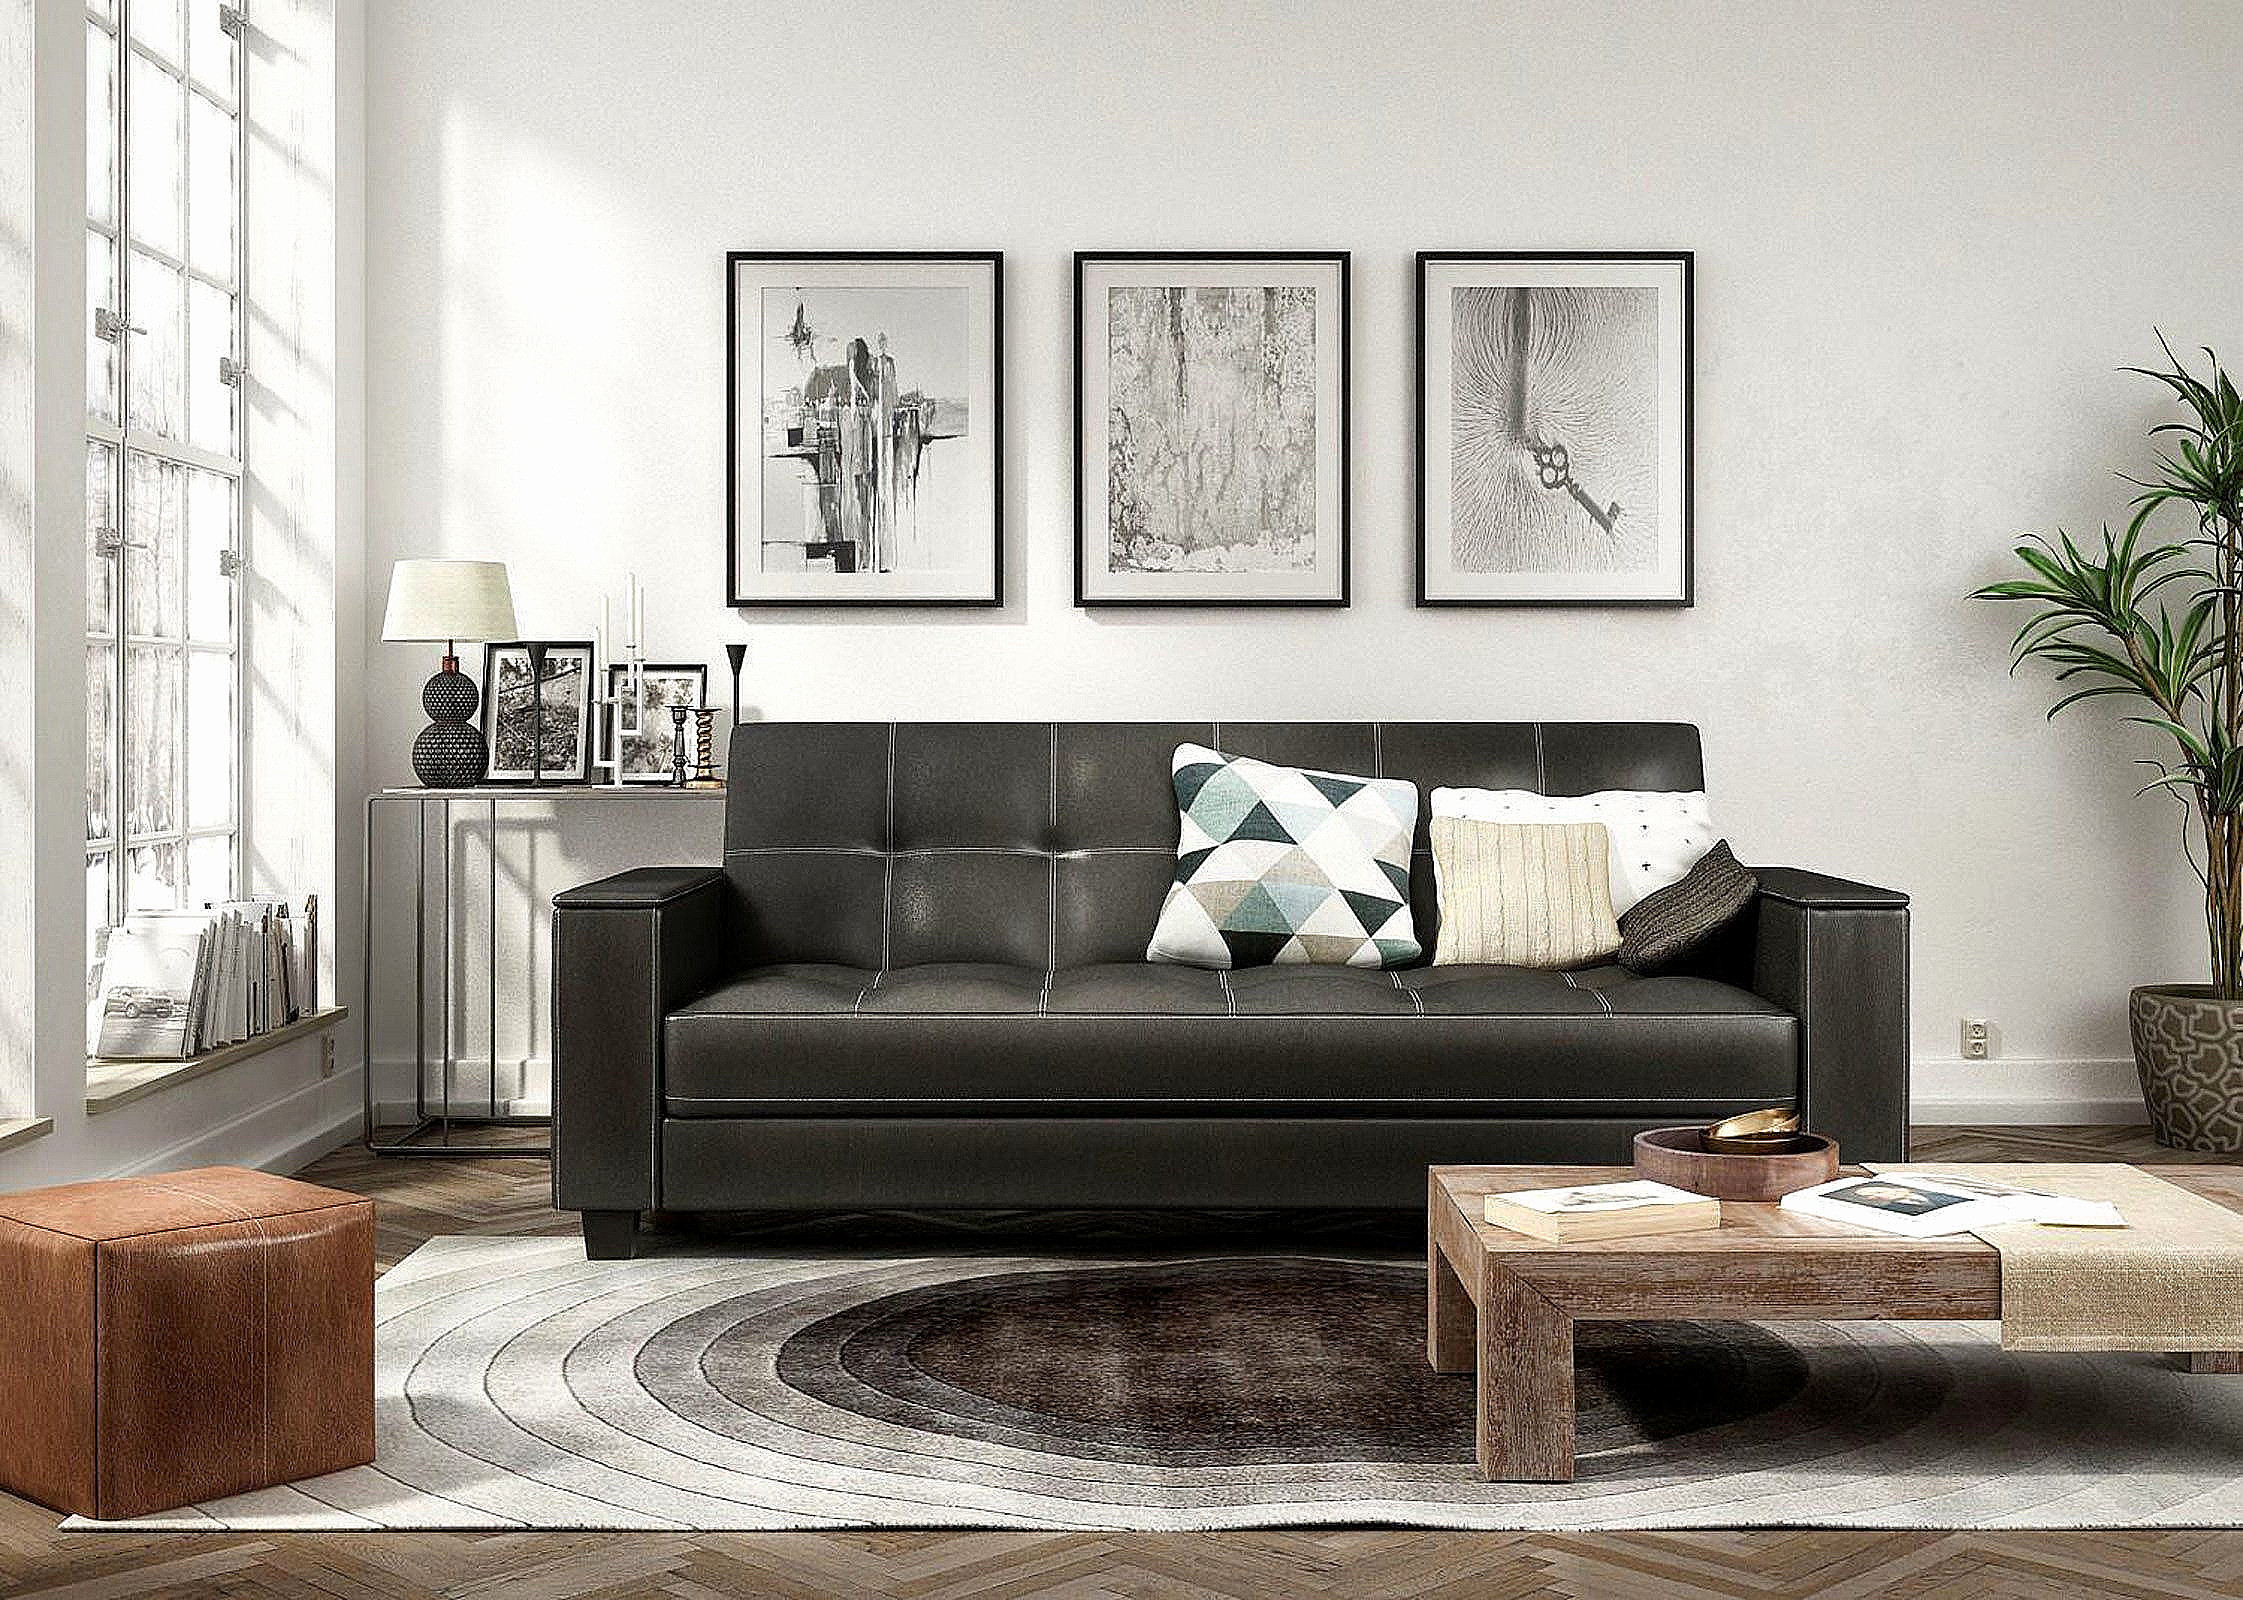 Grey Hardwood Floors Houzz Of Gray Living Room Chairs Awesome Coffee Table Decor Ideas Houzz Pertaining to Gray Living Room Chairs Inspirational Awesome Modern Living Room Furniture New Gunstige sofa Macys Of Gray